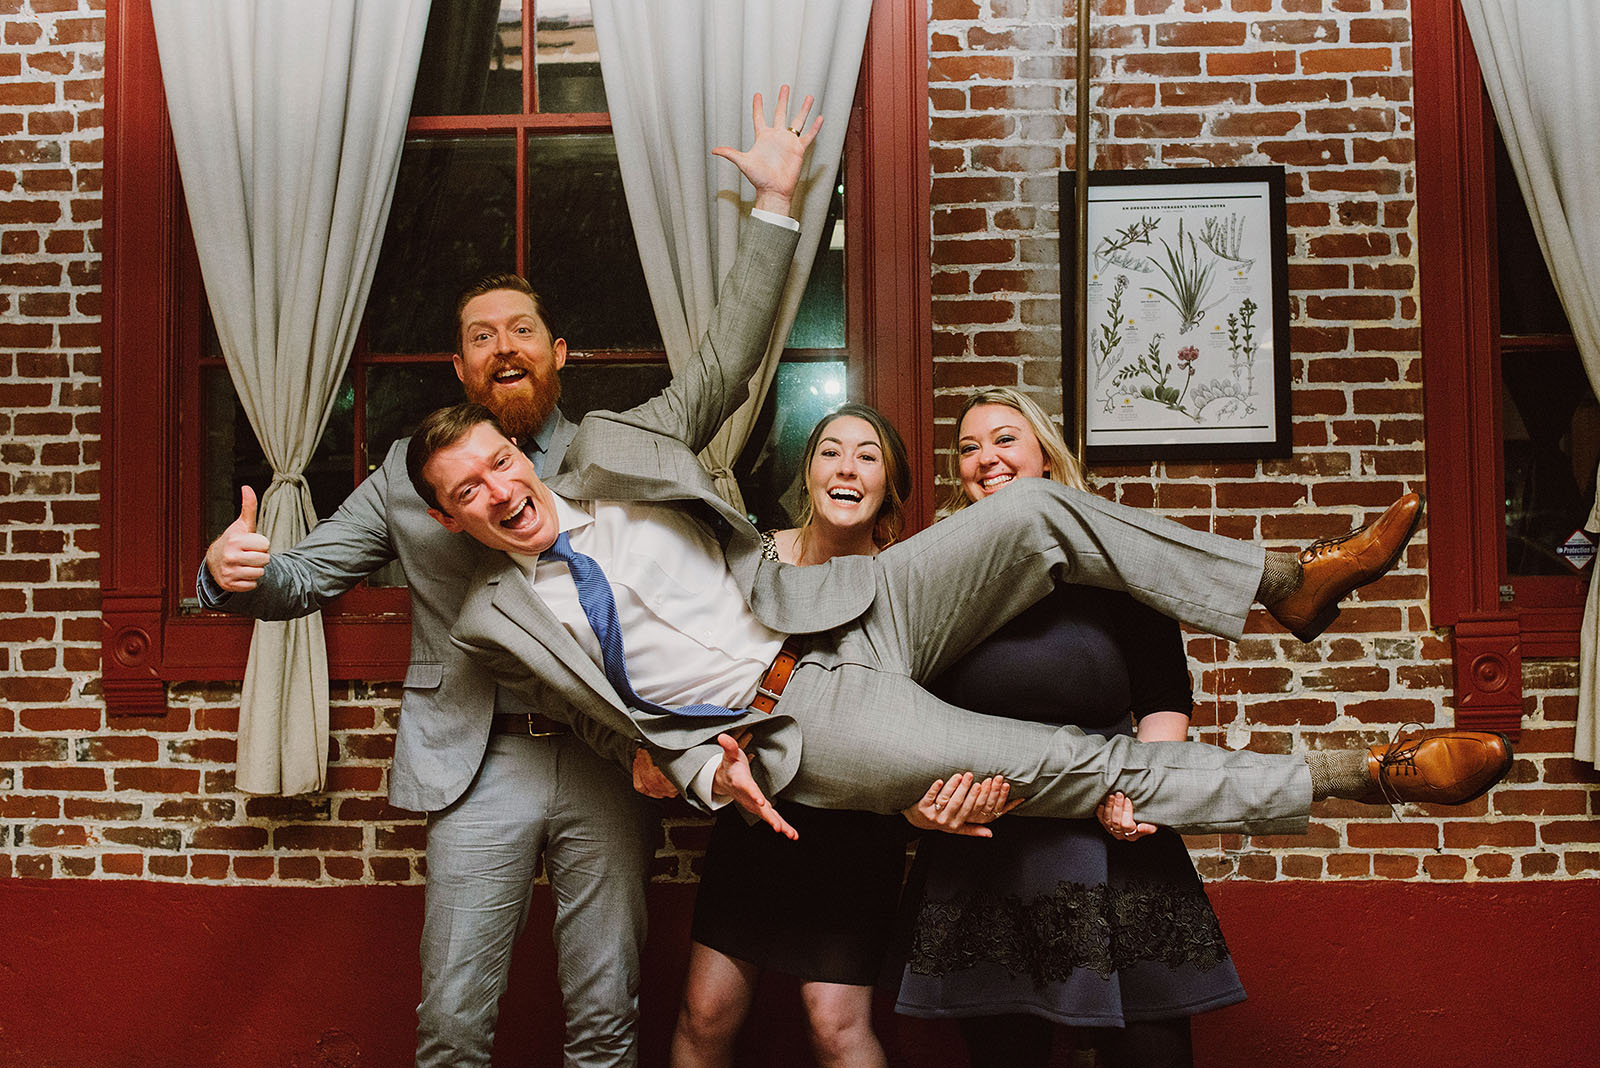 Silly portrait of the Groom and his siblings at an Intimate Restaurant Wedding in Portland, OR